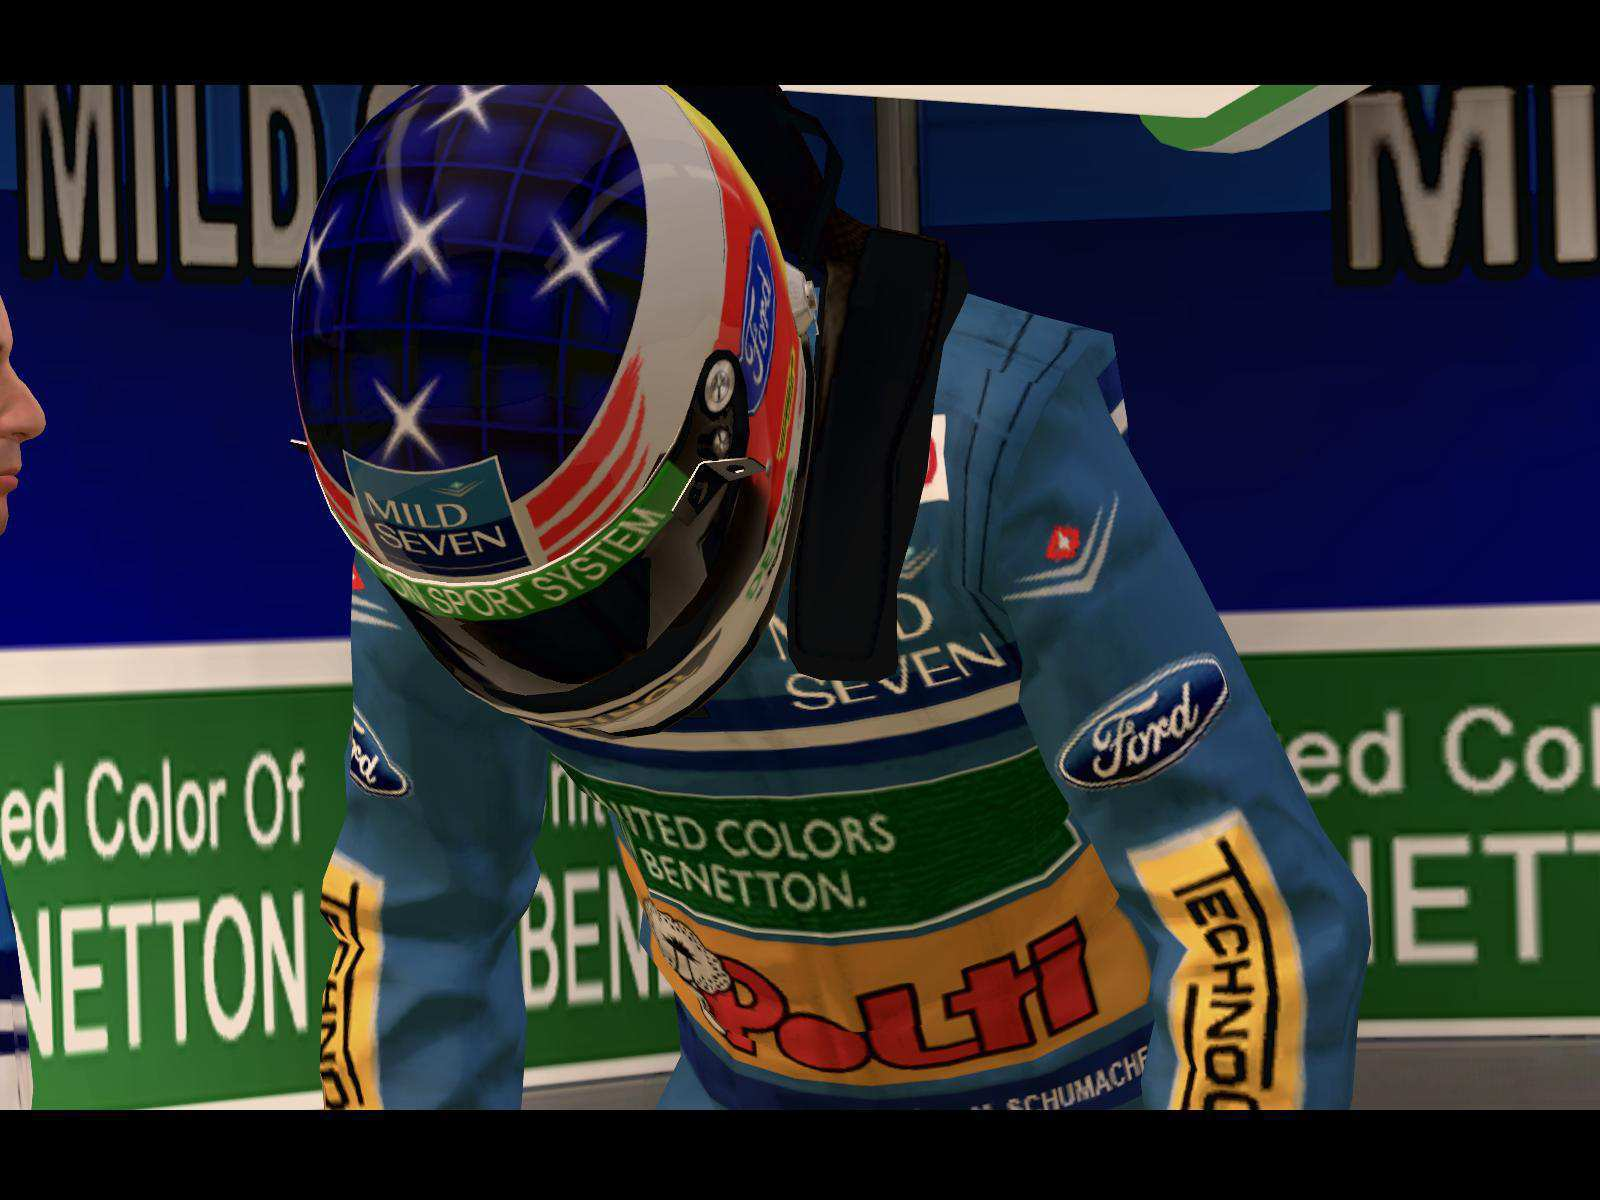 Screen_Benetton_1994_7-M.jpg